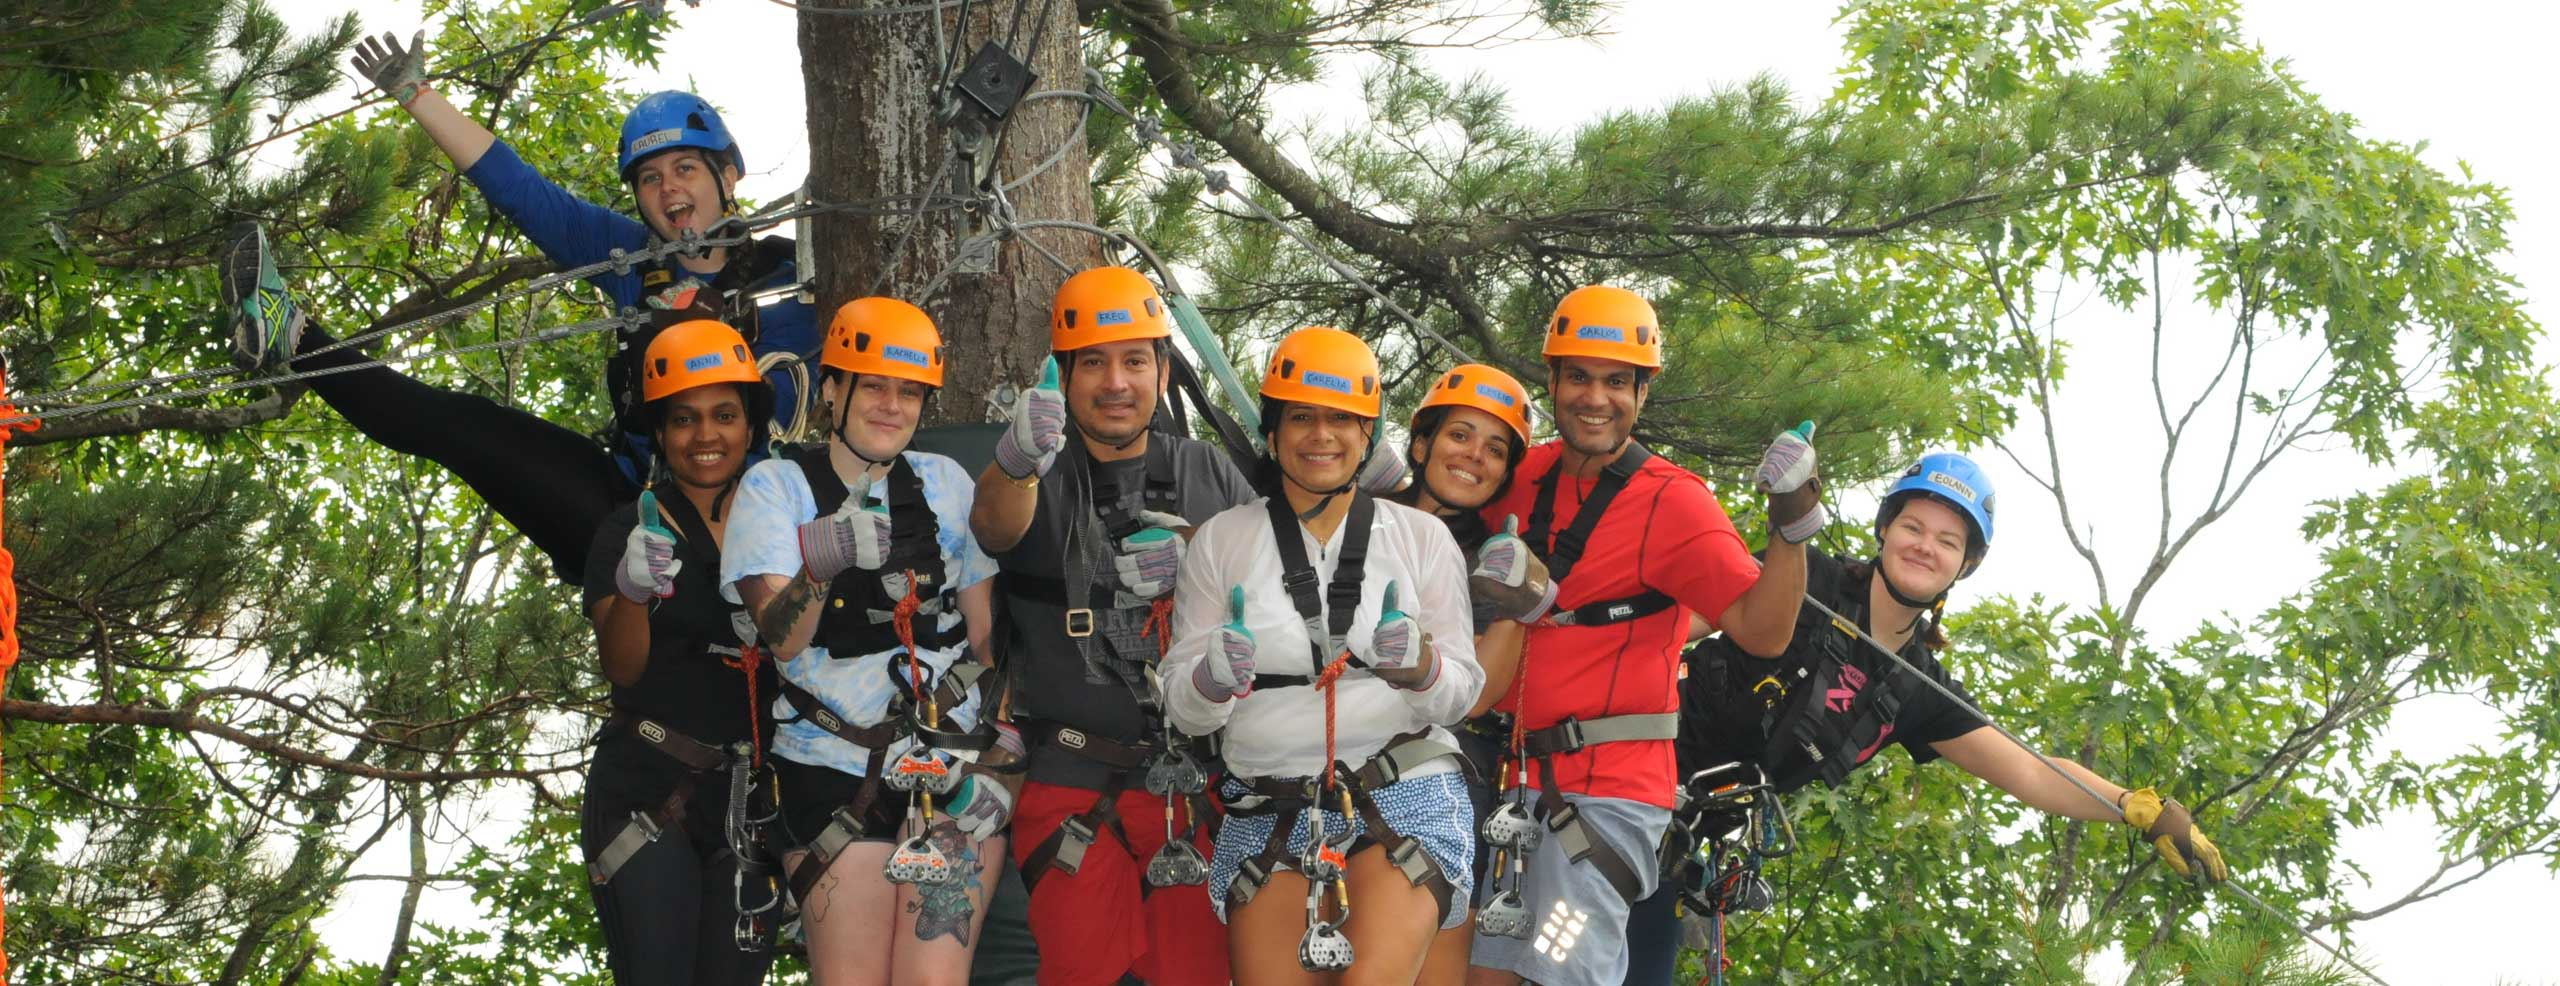 Group of people in zip line gear all standing on a zip line platform high in the trees